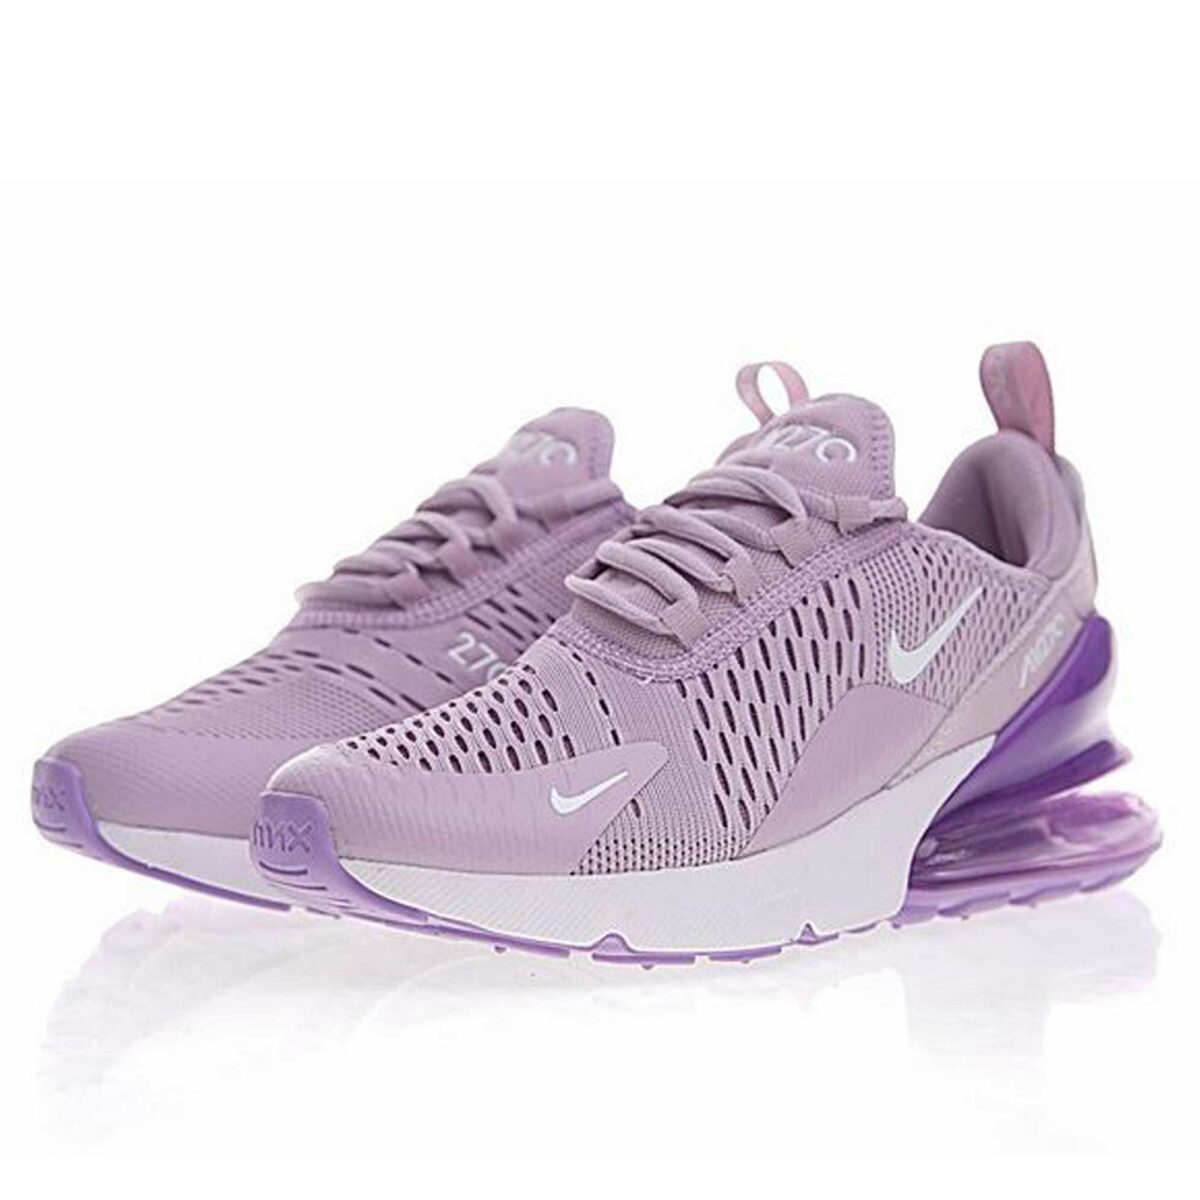 nike air max 270 purple купить